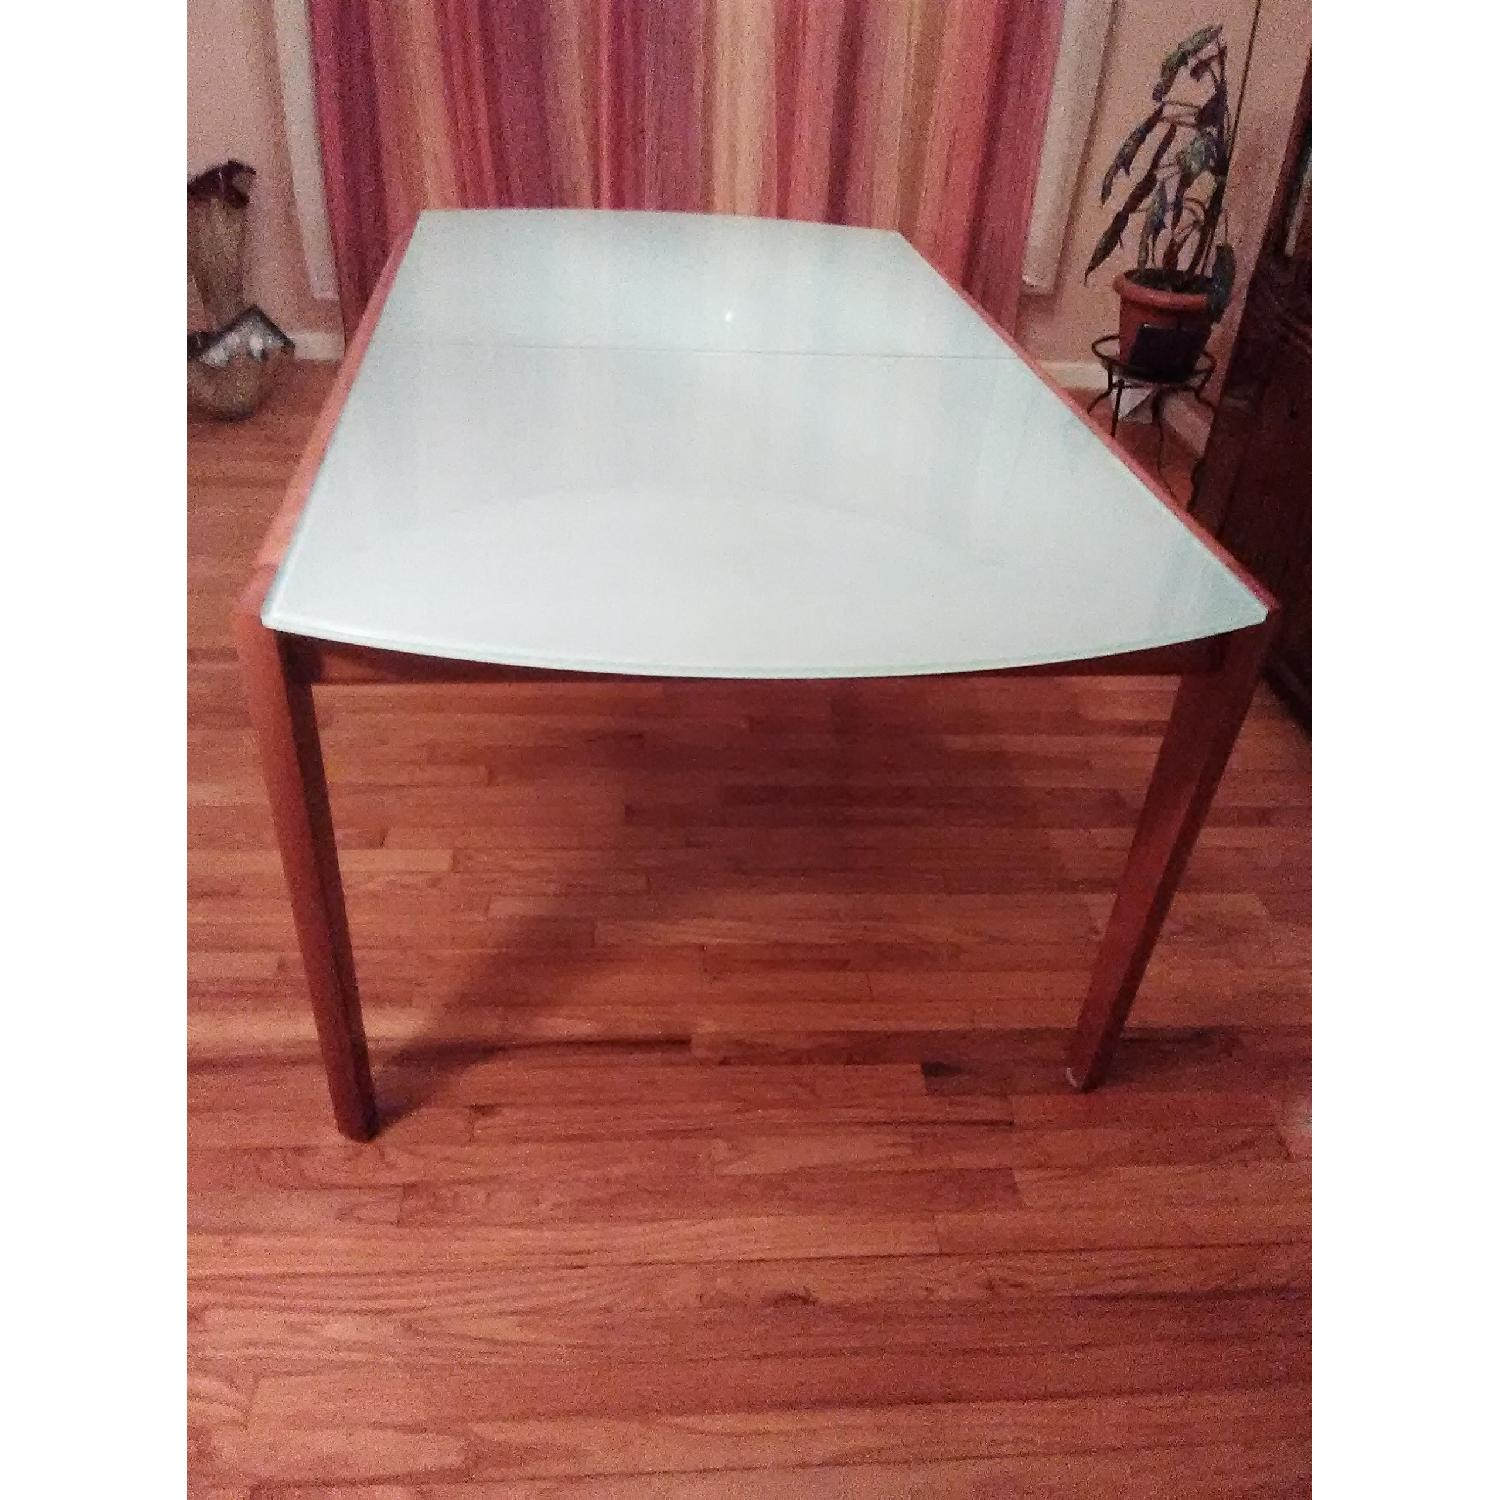 Lima Italian Greenish Glass & Wood Dining Table